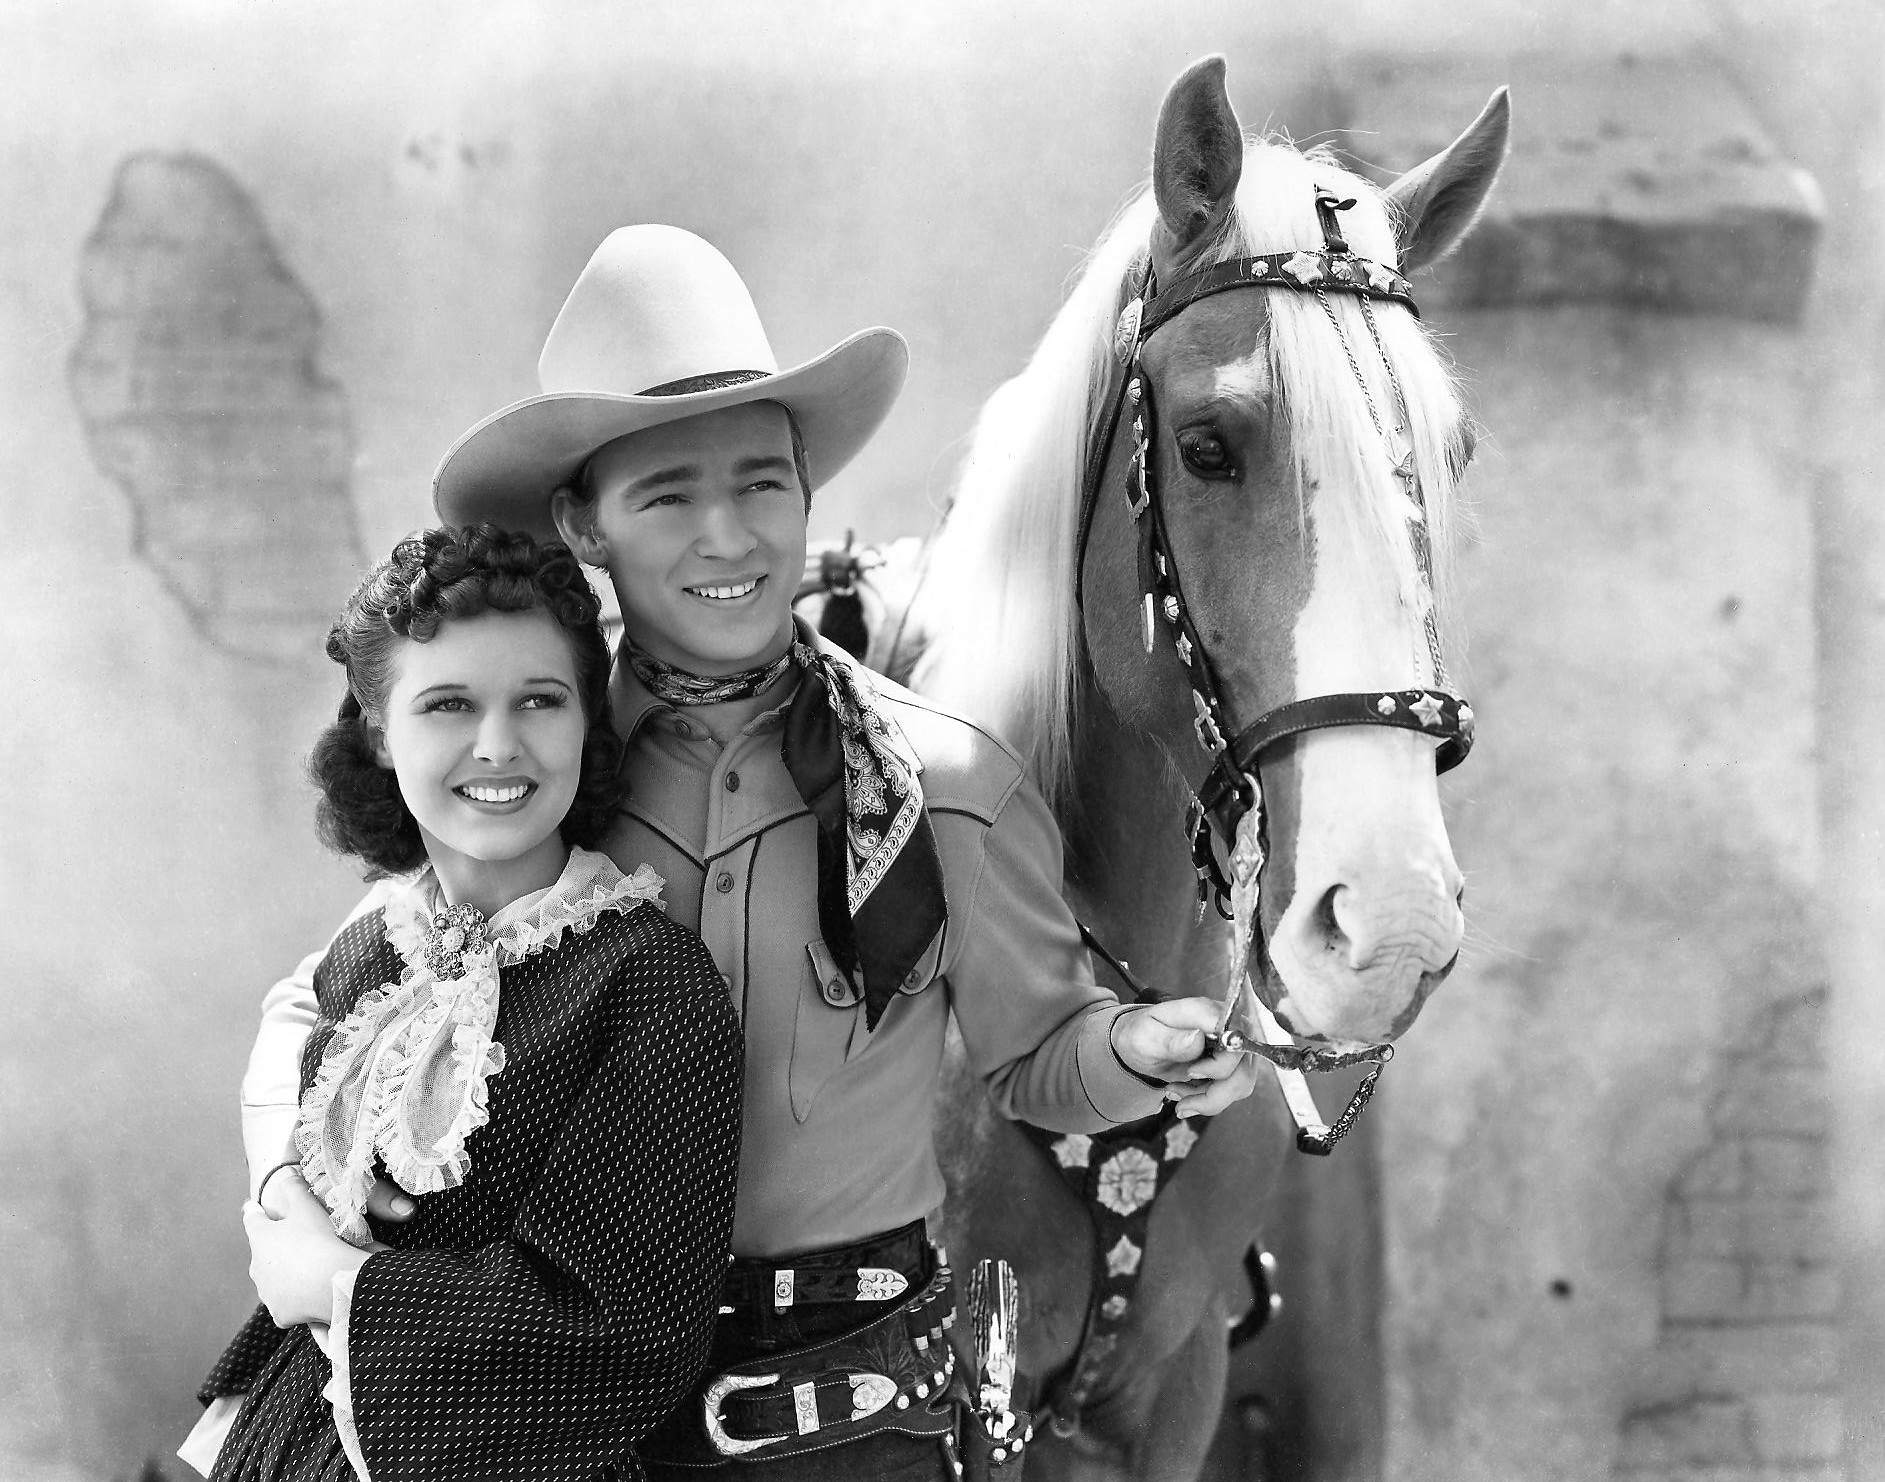 Lynne_Roberts-Roy_Rogers_in_Billy_the_Kid_Returns